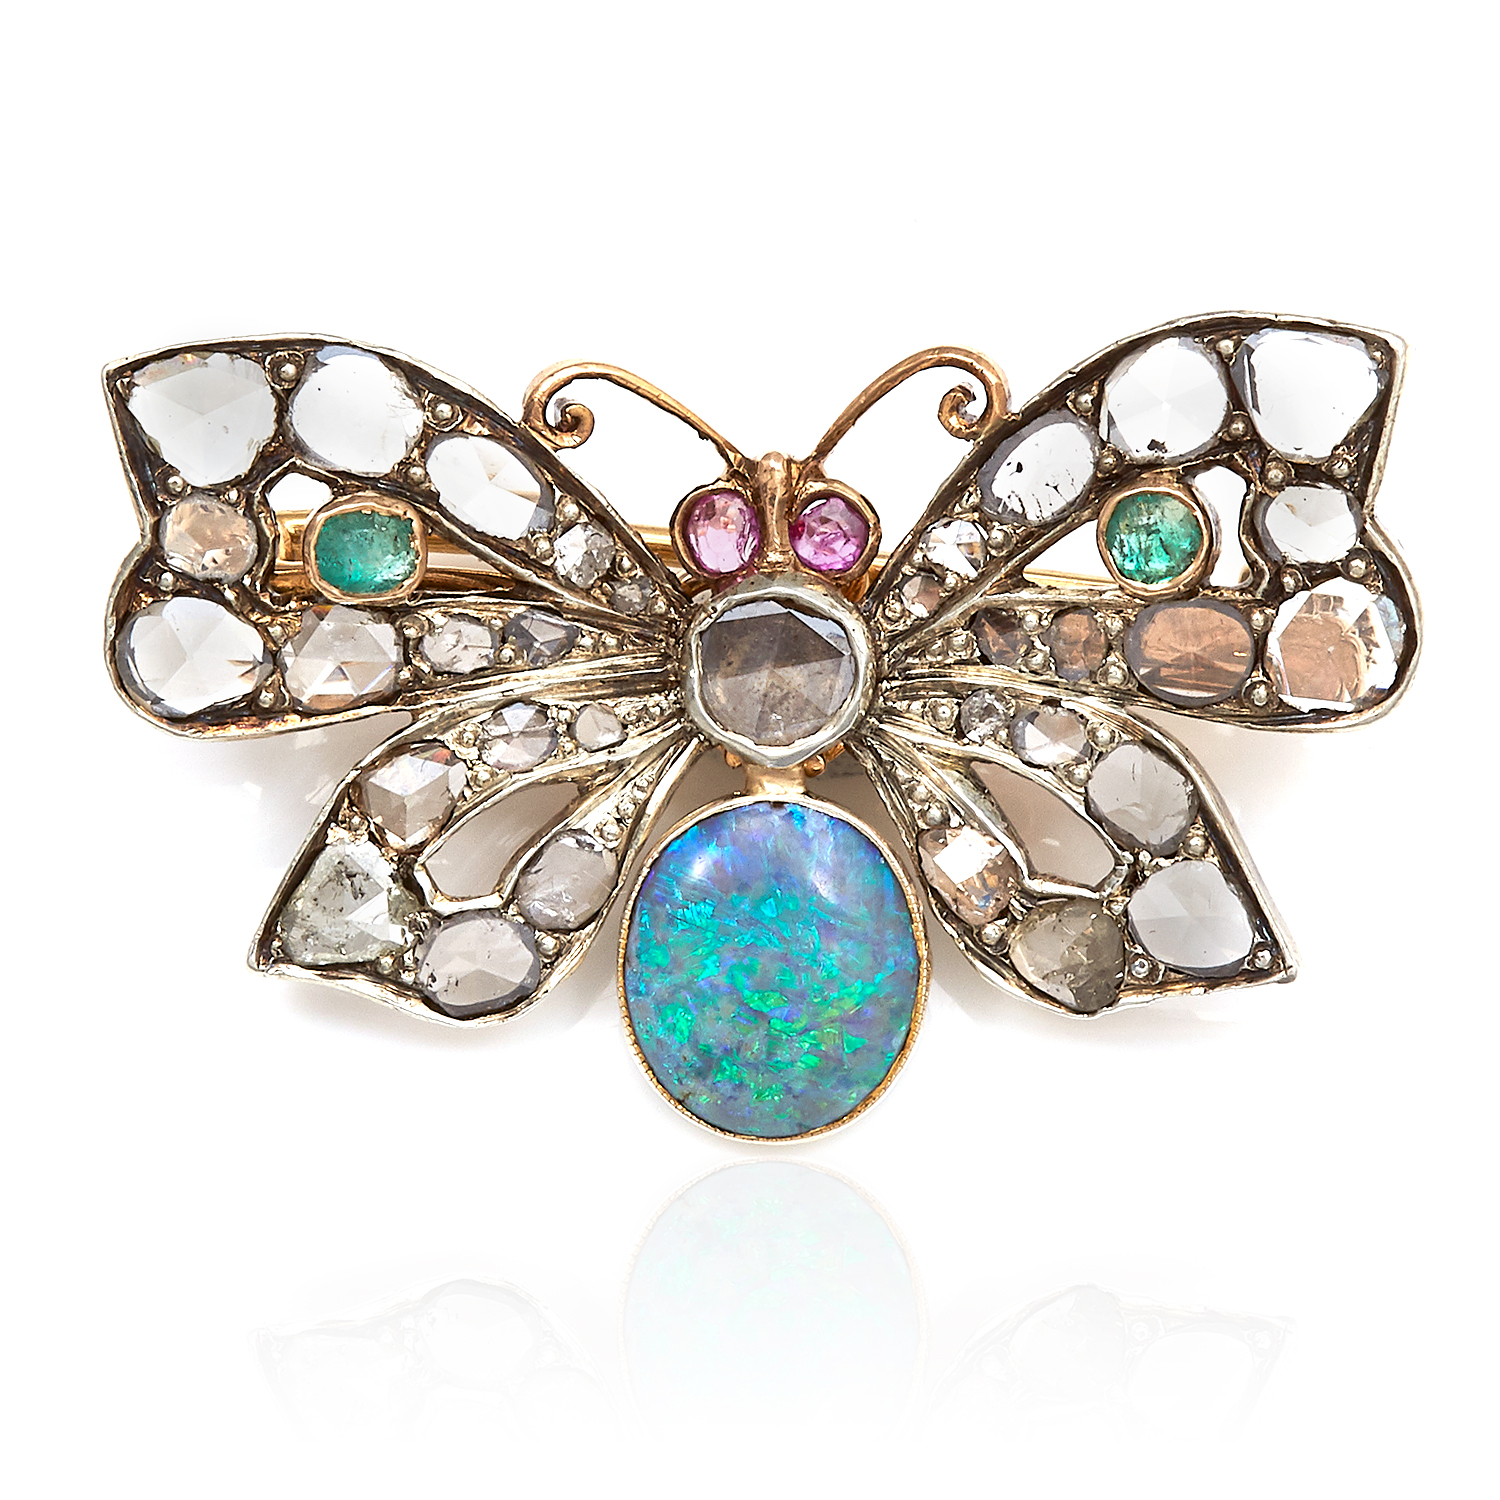 A VICTORIAN OPAL, DIAMOND, EMERALD AND RUBY BUTTERFLY BROOCH in yellow gold, set with a central